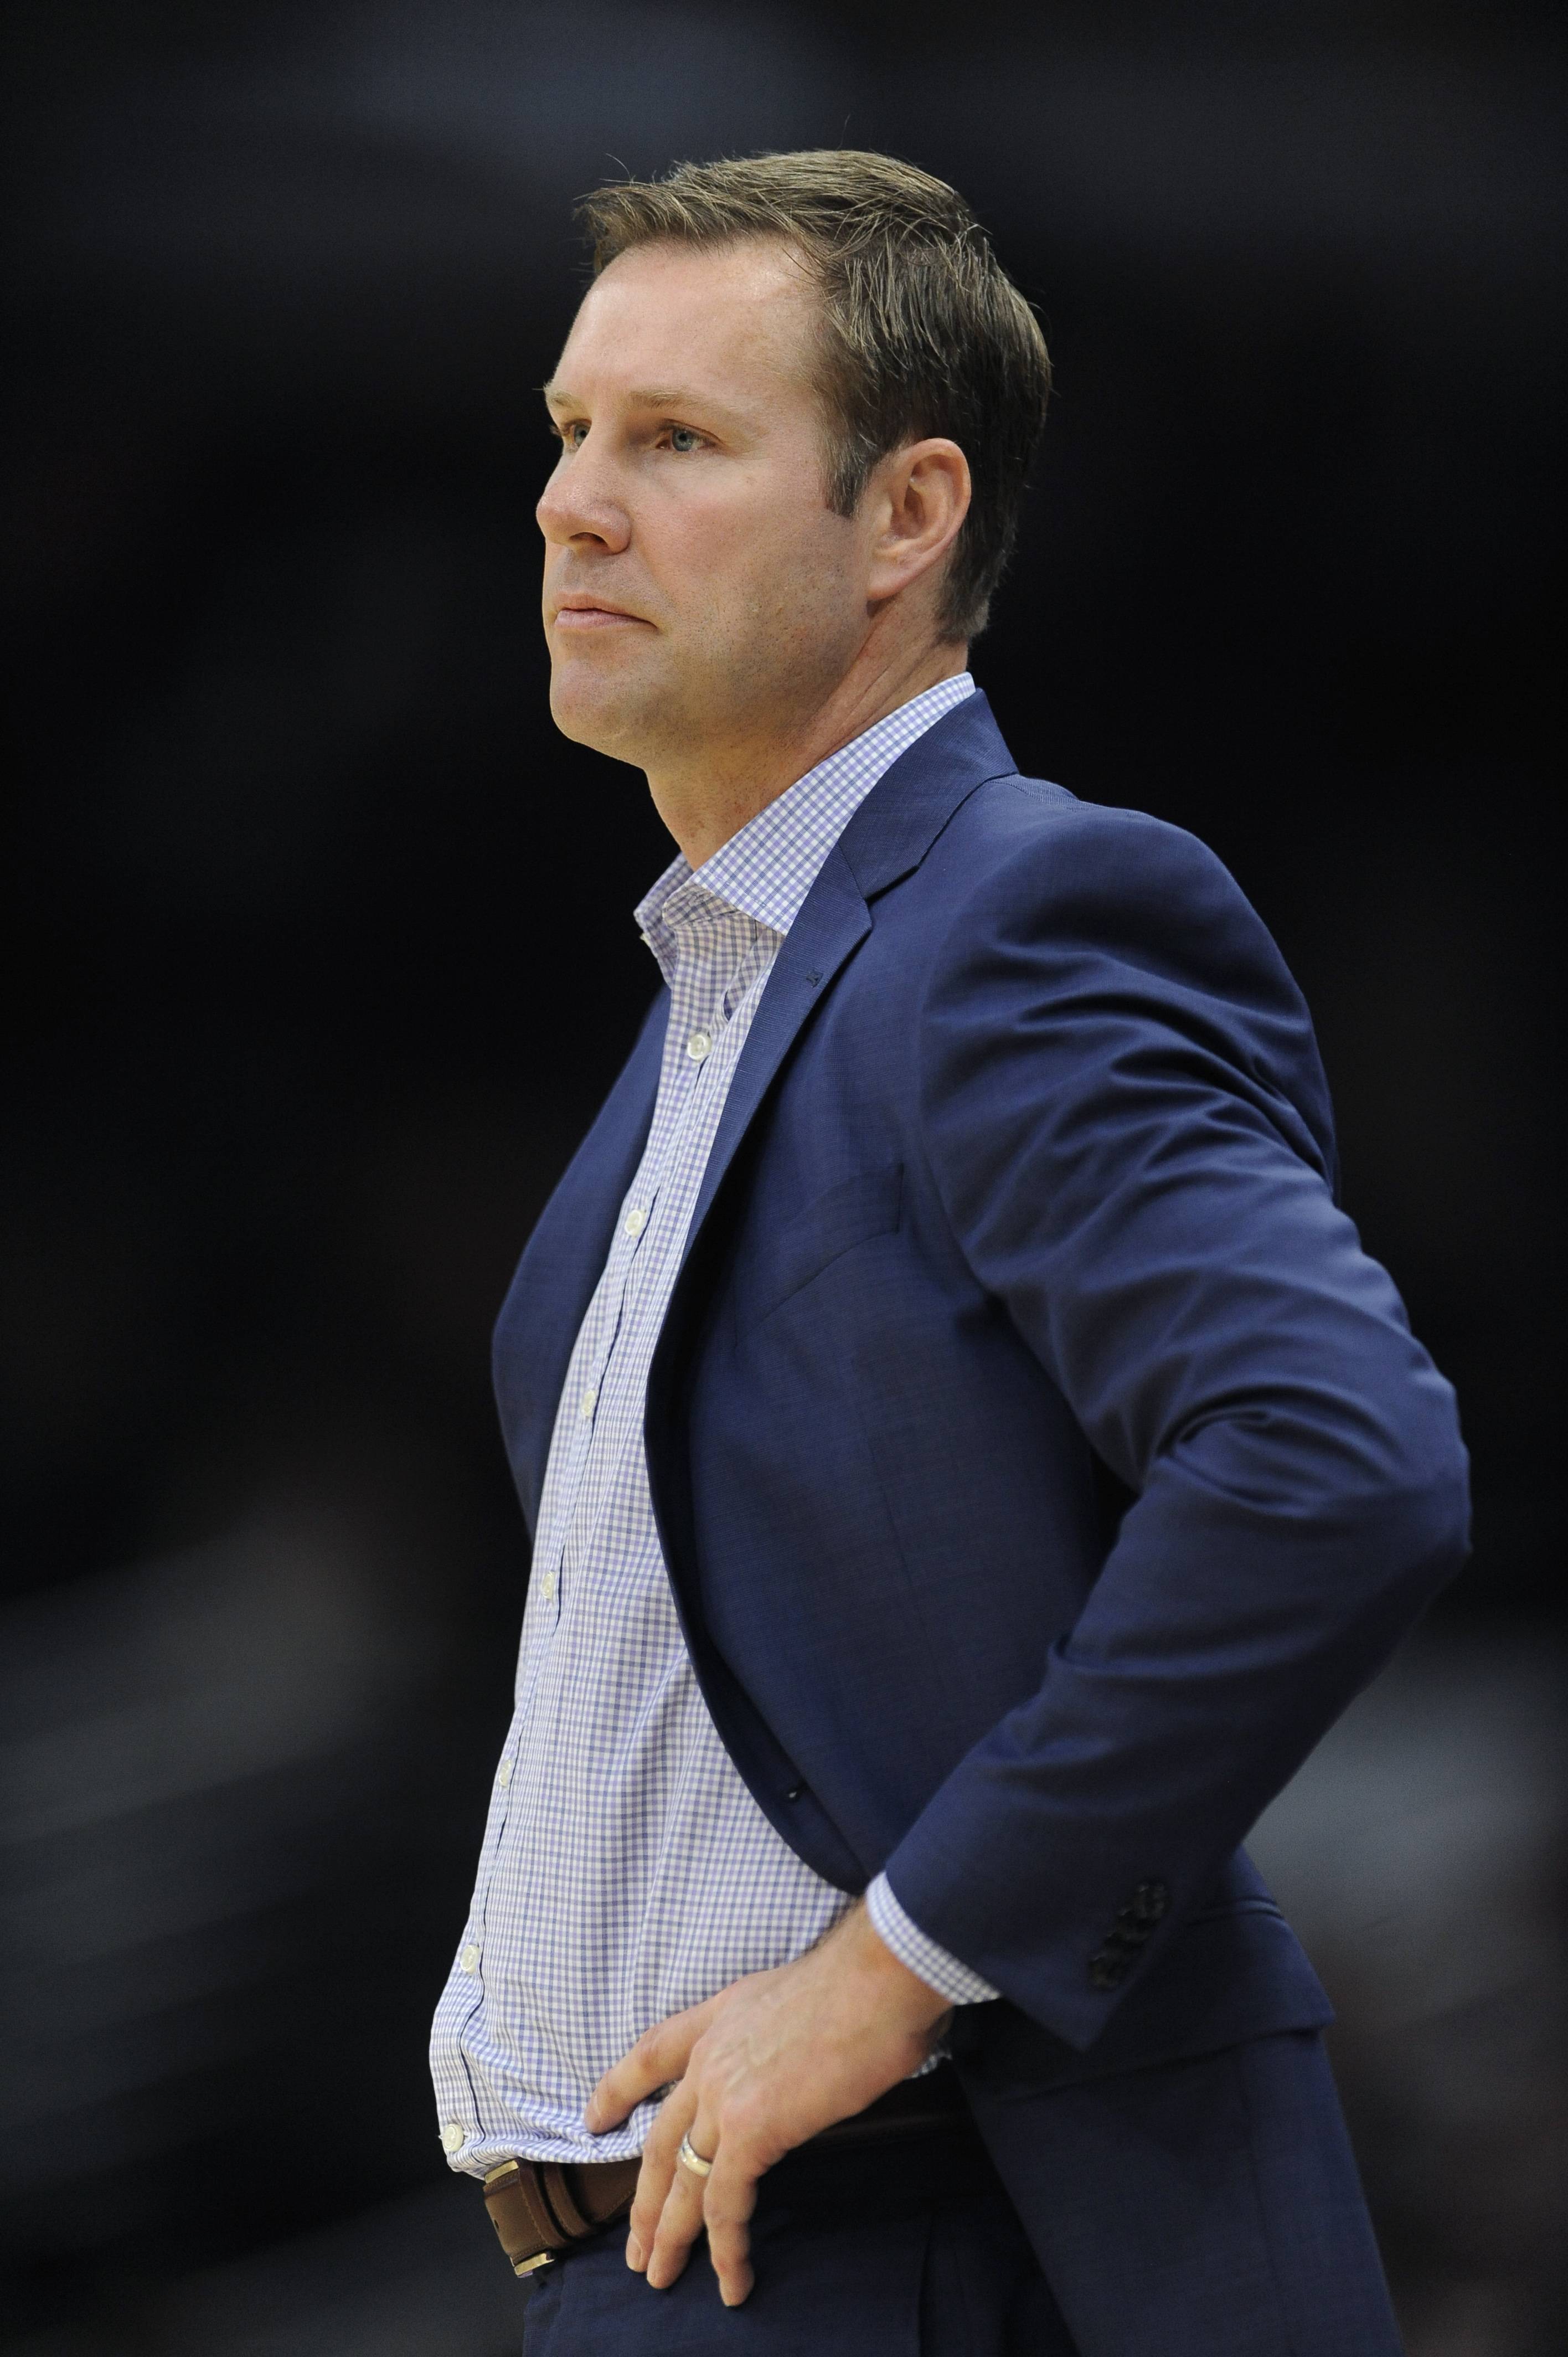 Chicago Bulls head coach Fred Hoiberg looks on during the second half of an NBA basketball game against the Oklahoma City Thunder, Saturday, Oct. 28, 2017, in Chicago.